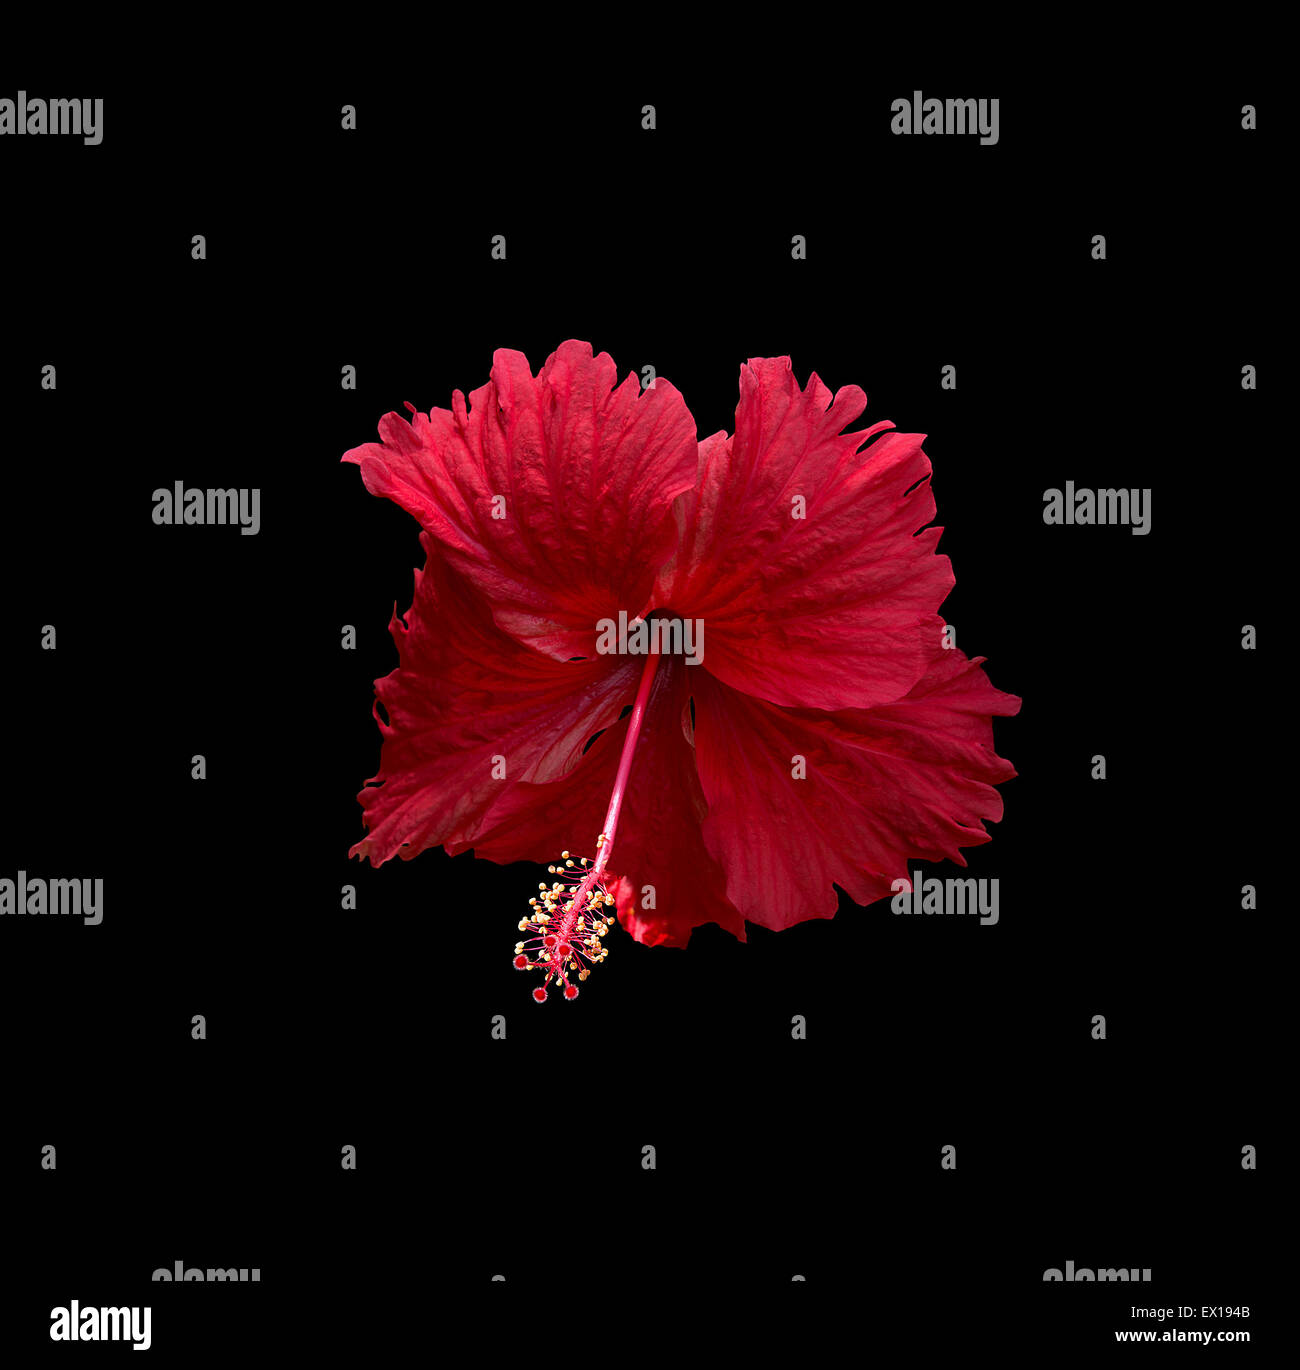 Carmine red hibiscus flower isolated on black background stock photo carmine red hibiscus flower isolated on black background izmirmasajfo